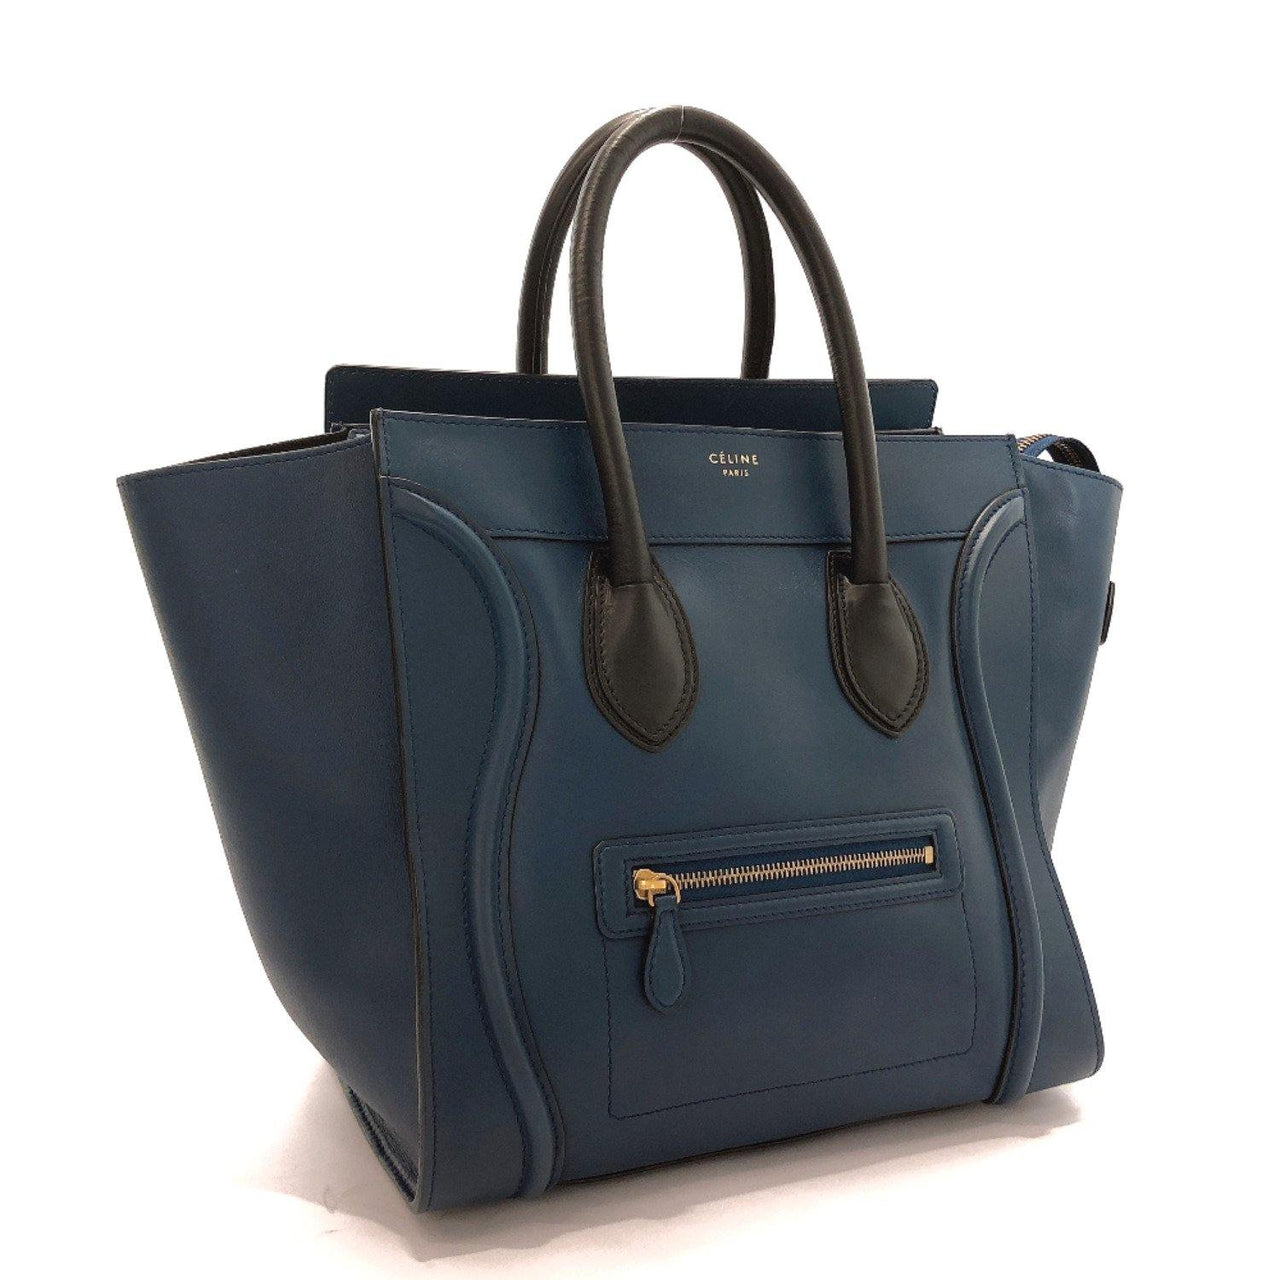 CELINE Handbag F-AT-0143 Luggage Mini shopper leather blue Women Used - JP-BRANDS.com